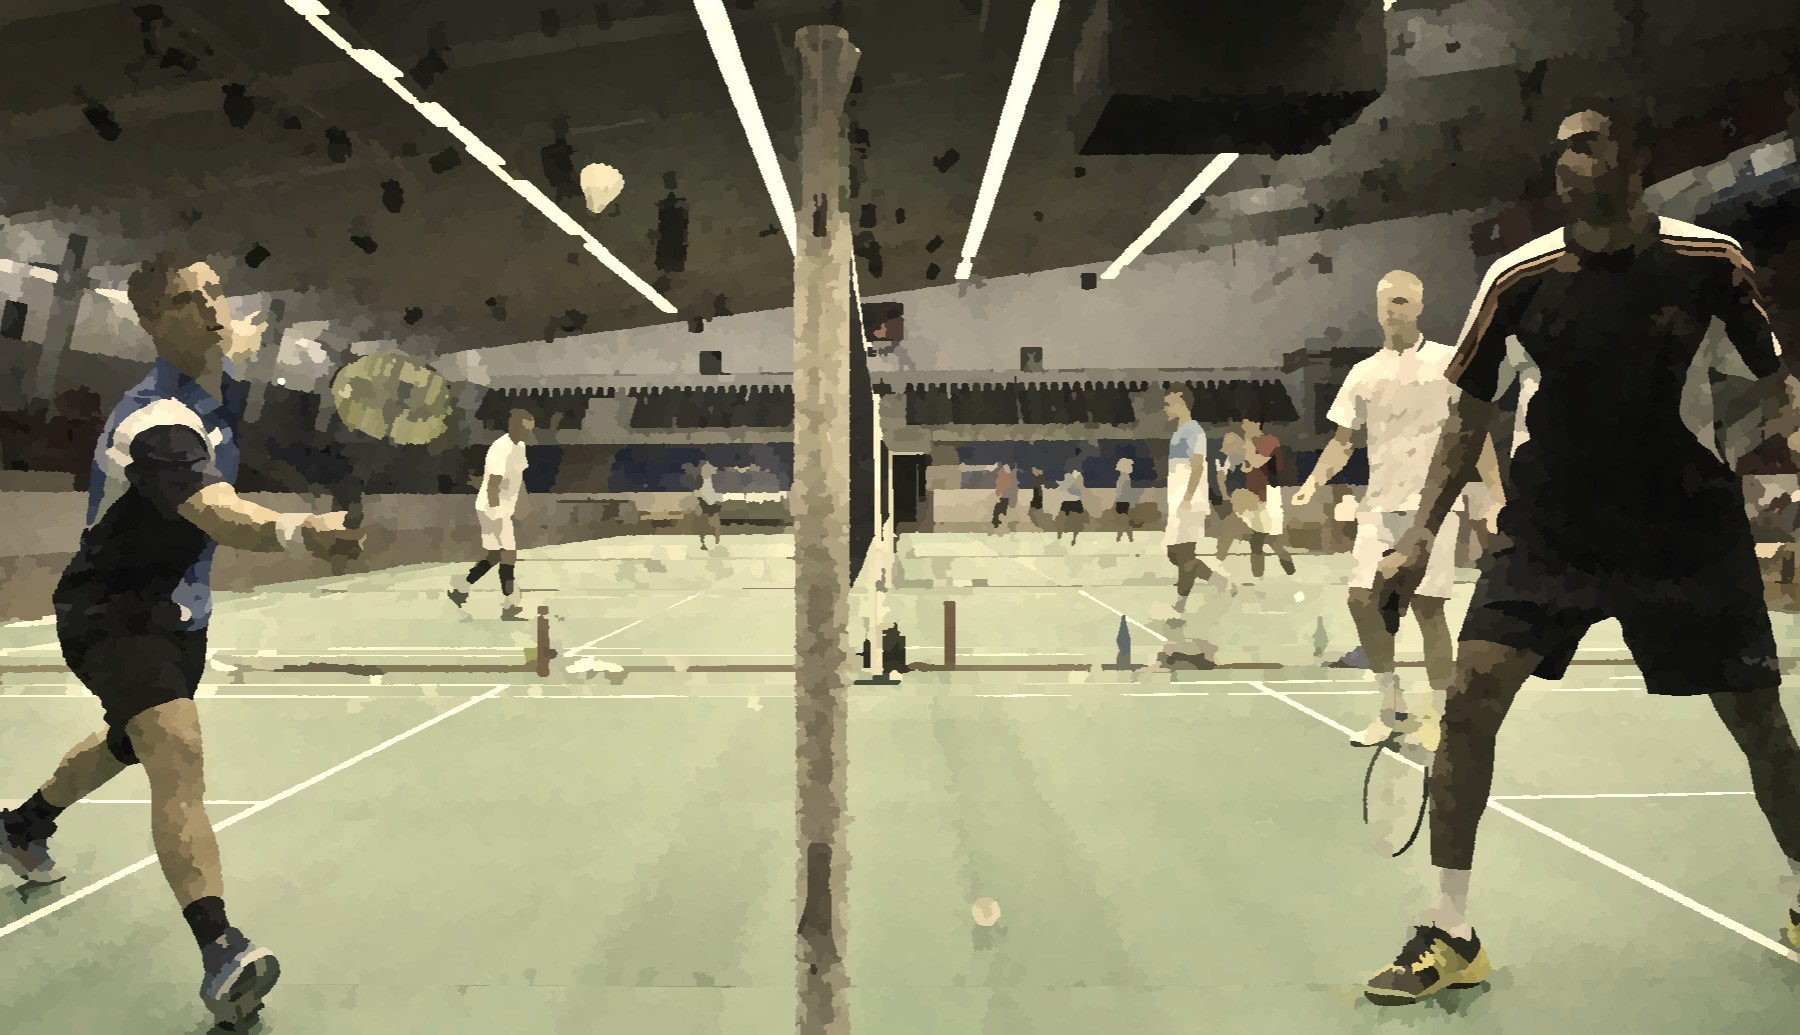 Badminton players on court